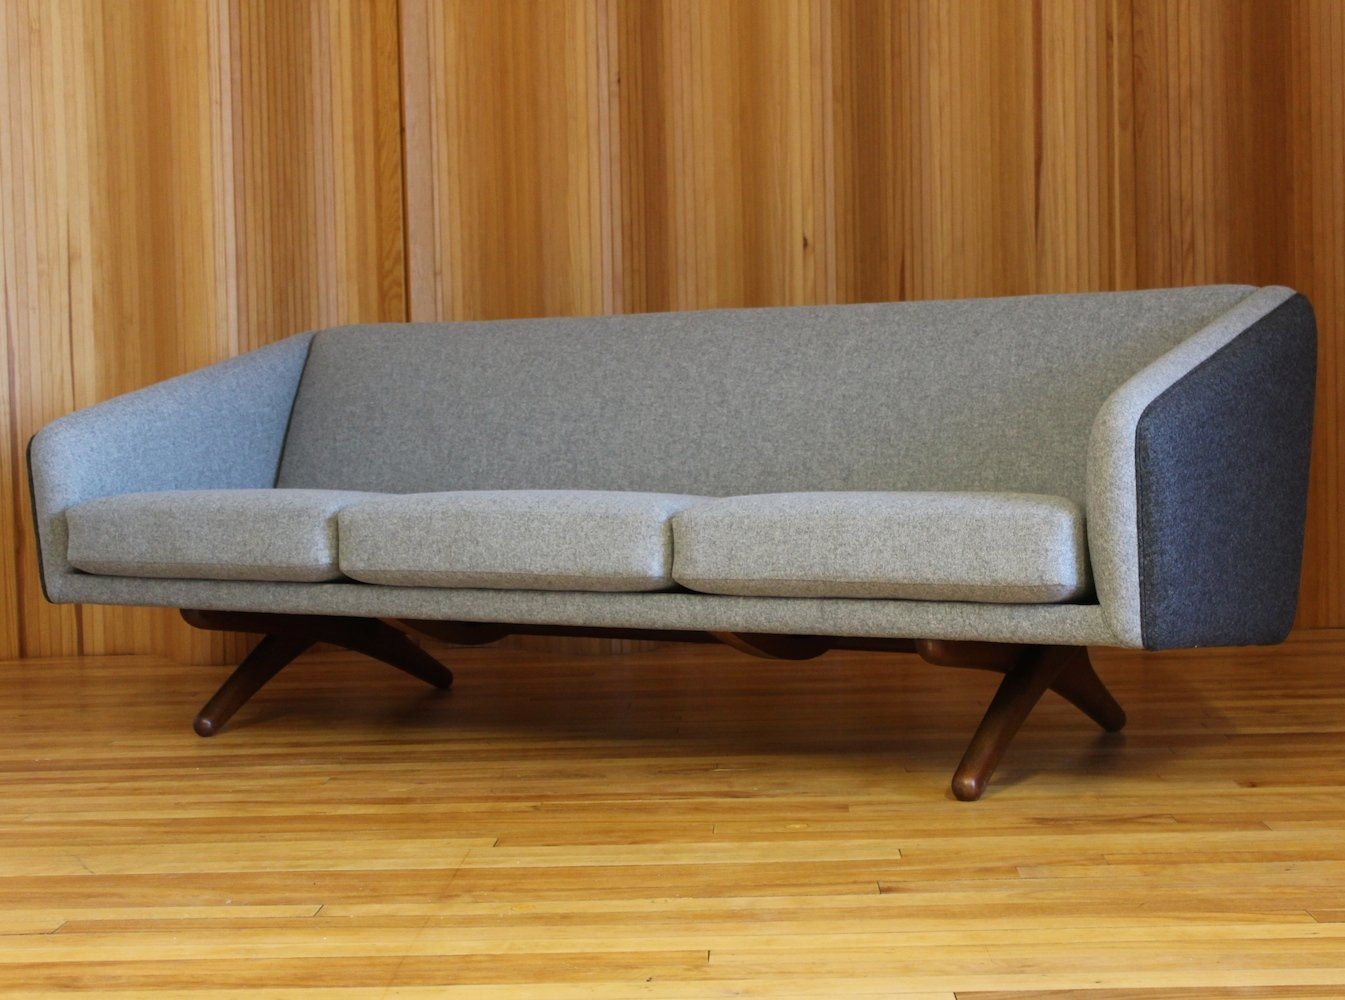 ML 90 Sofa By Illum Wikkelsø For A. Mikael Laursen, 1950s